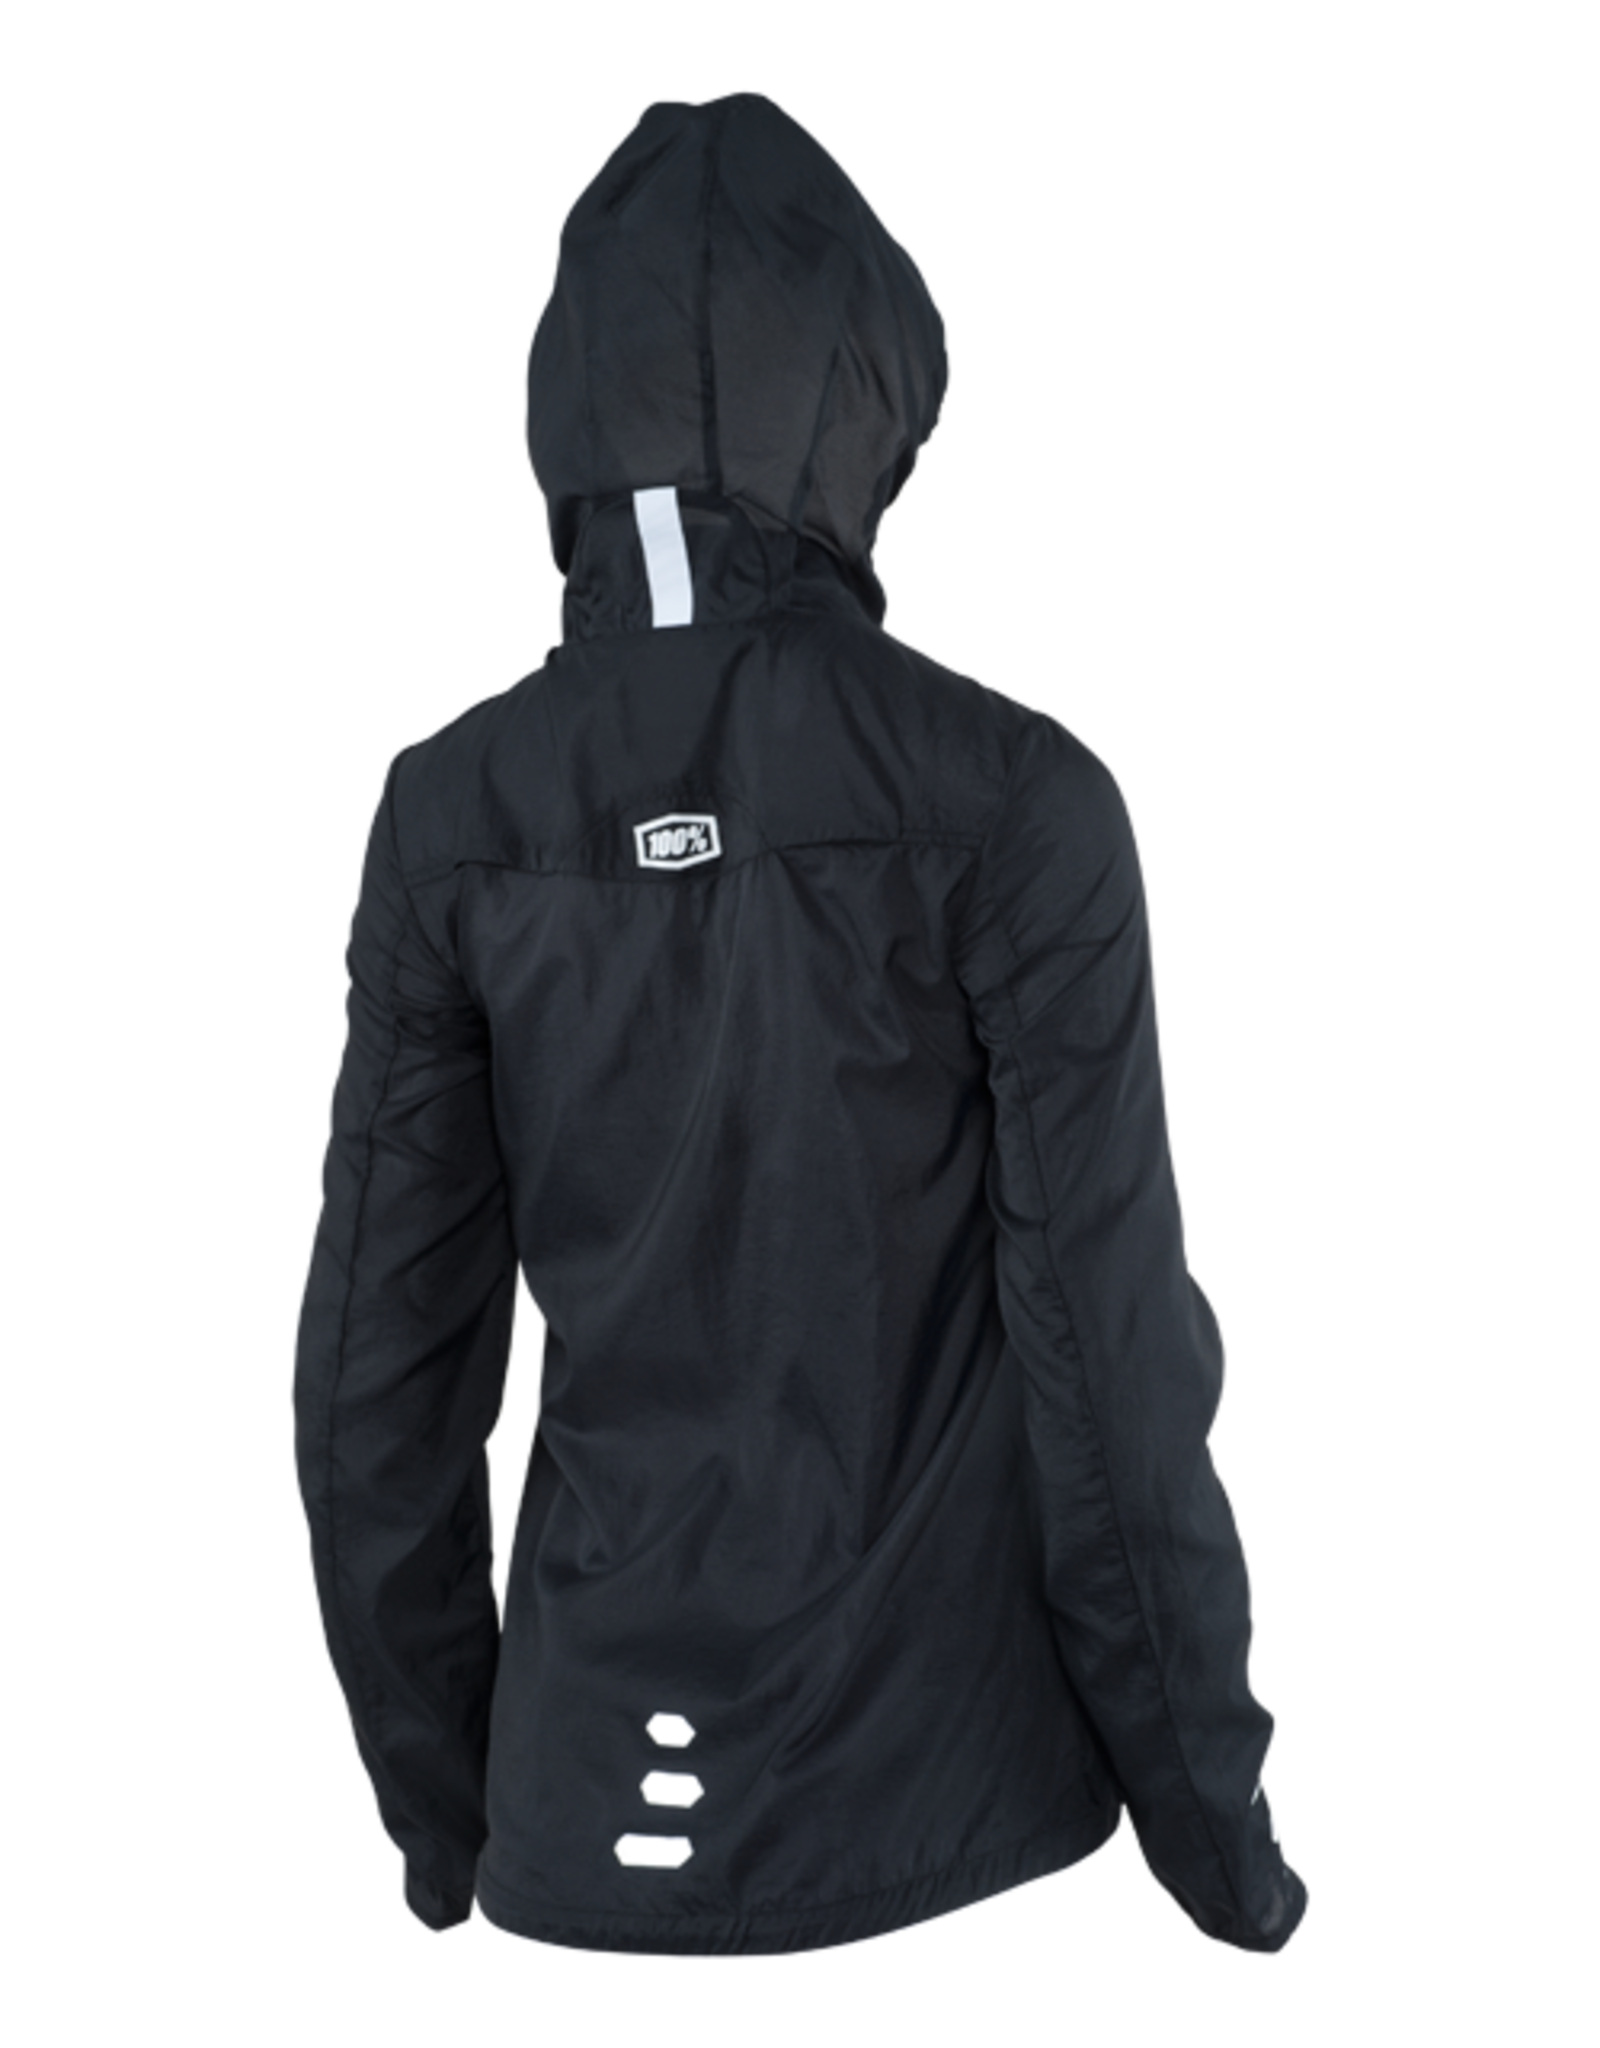 100% JACKET 100% AERO TECH WINDBREAKER WOMENS